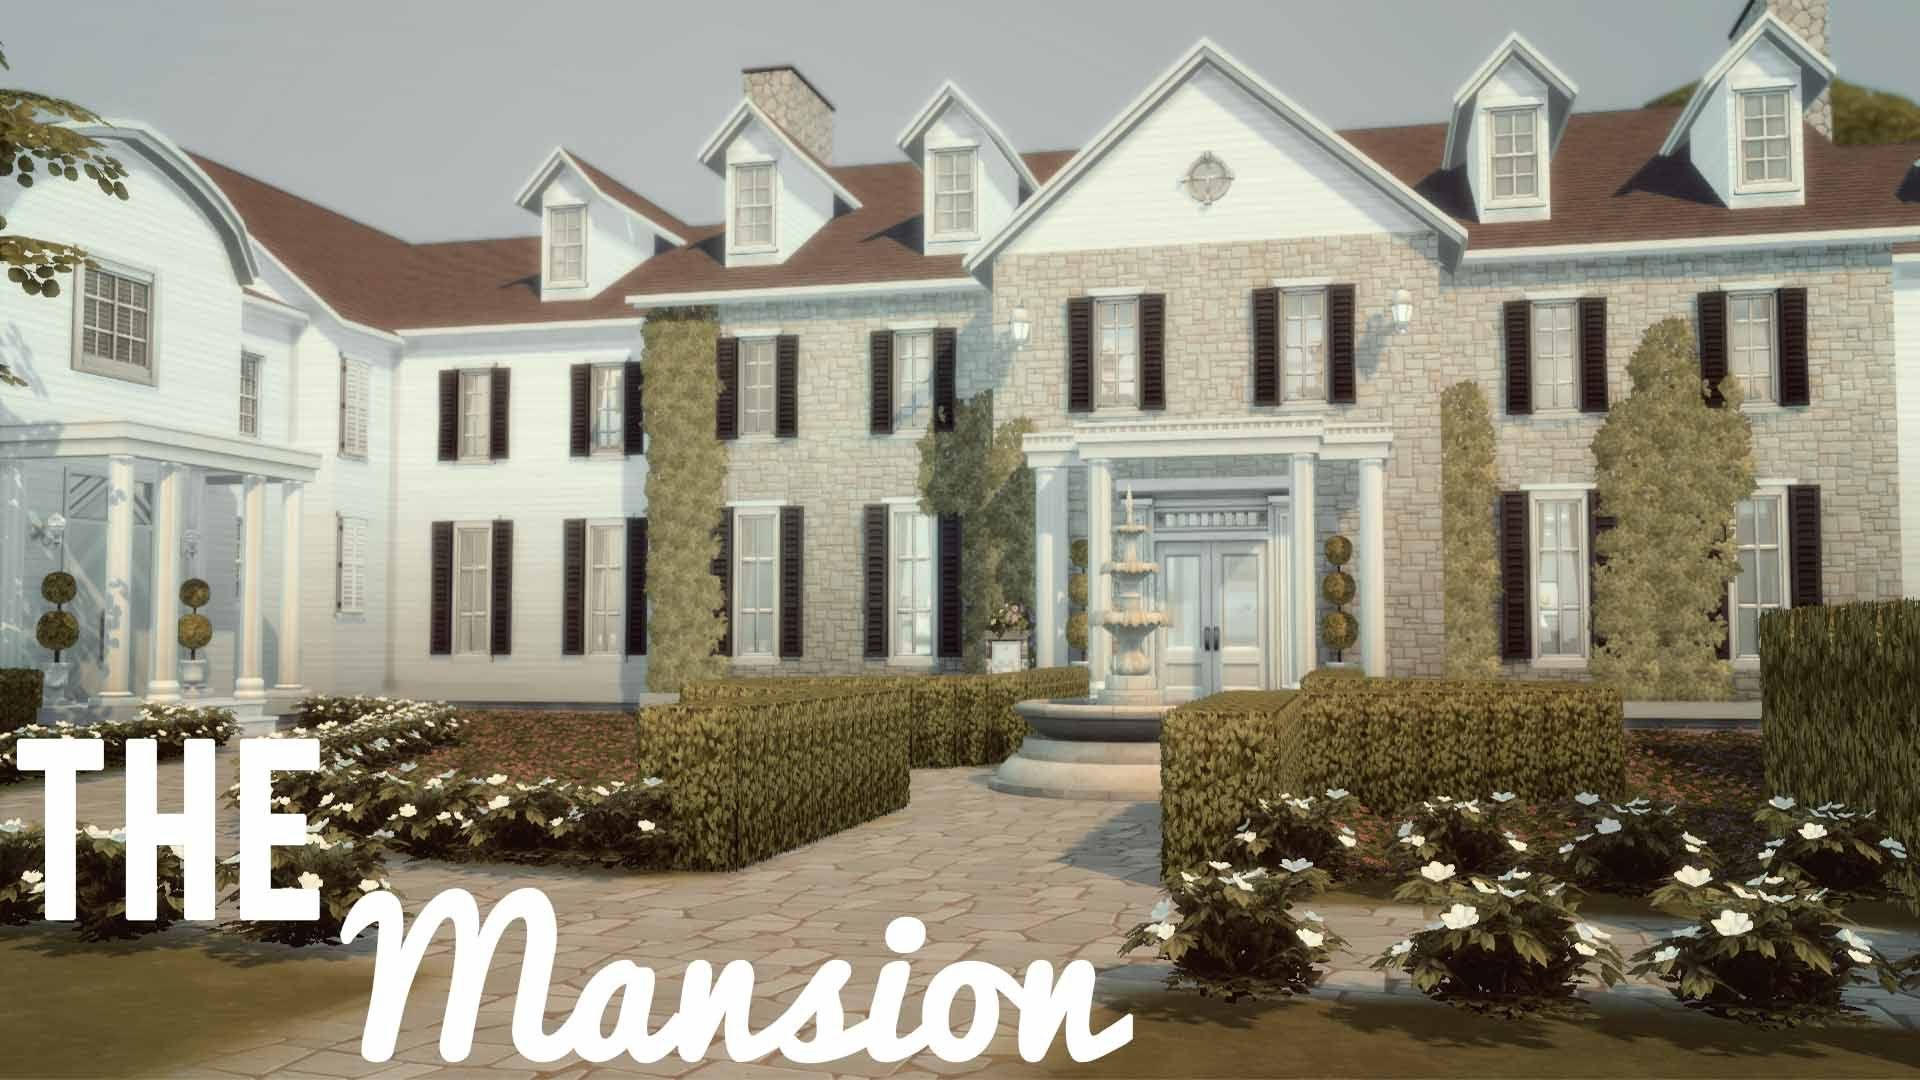 The Sims 4 House Building The Mansion sims Pinterest